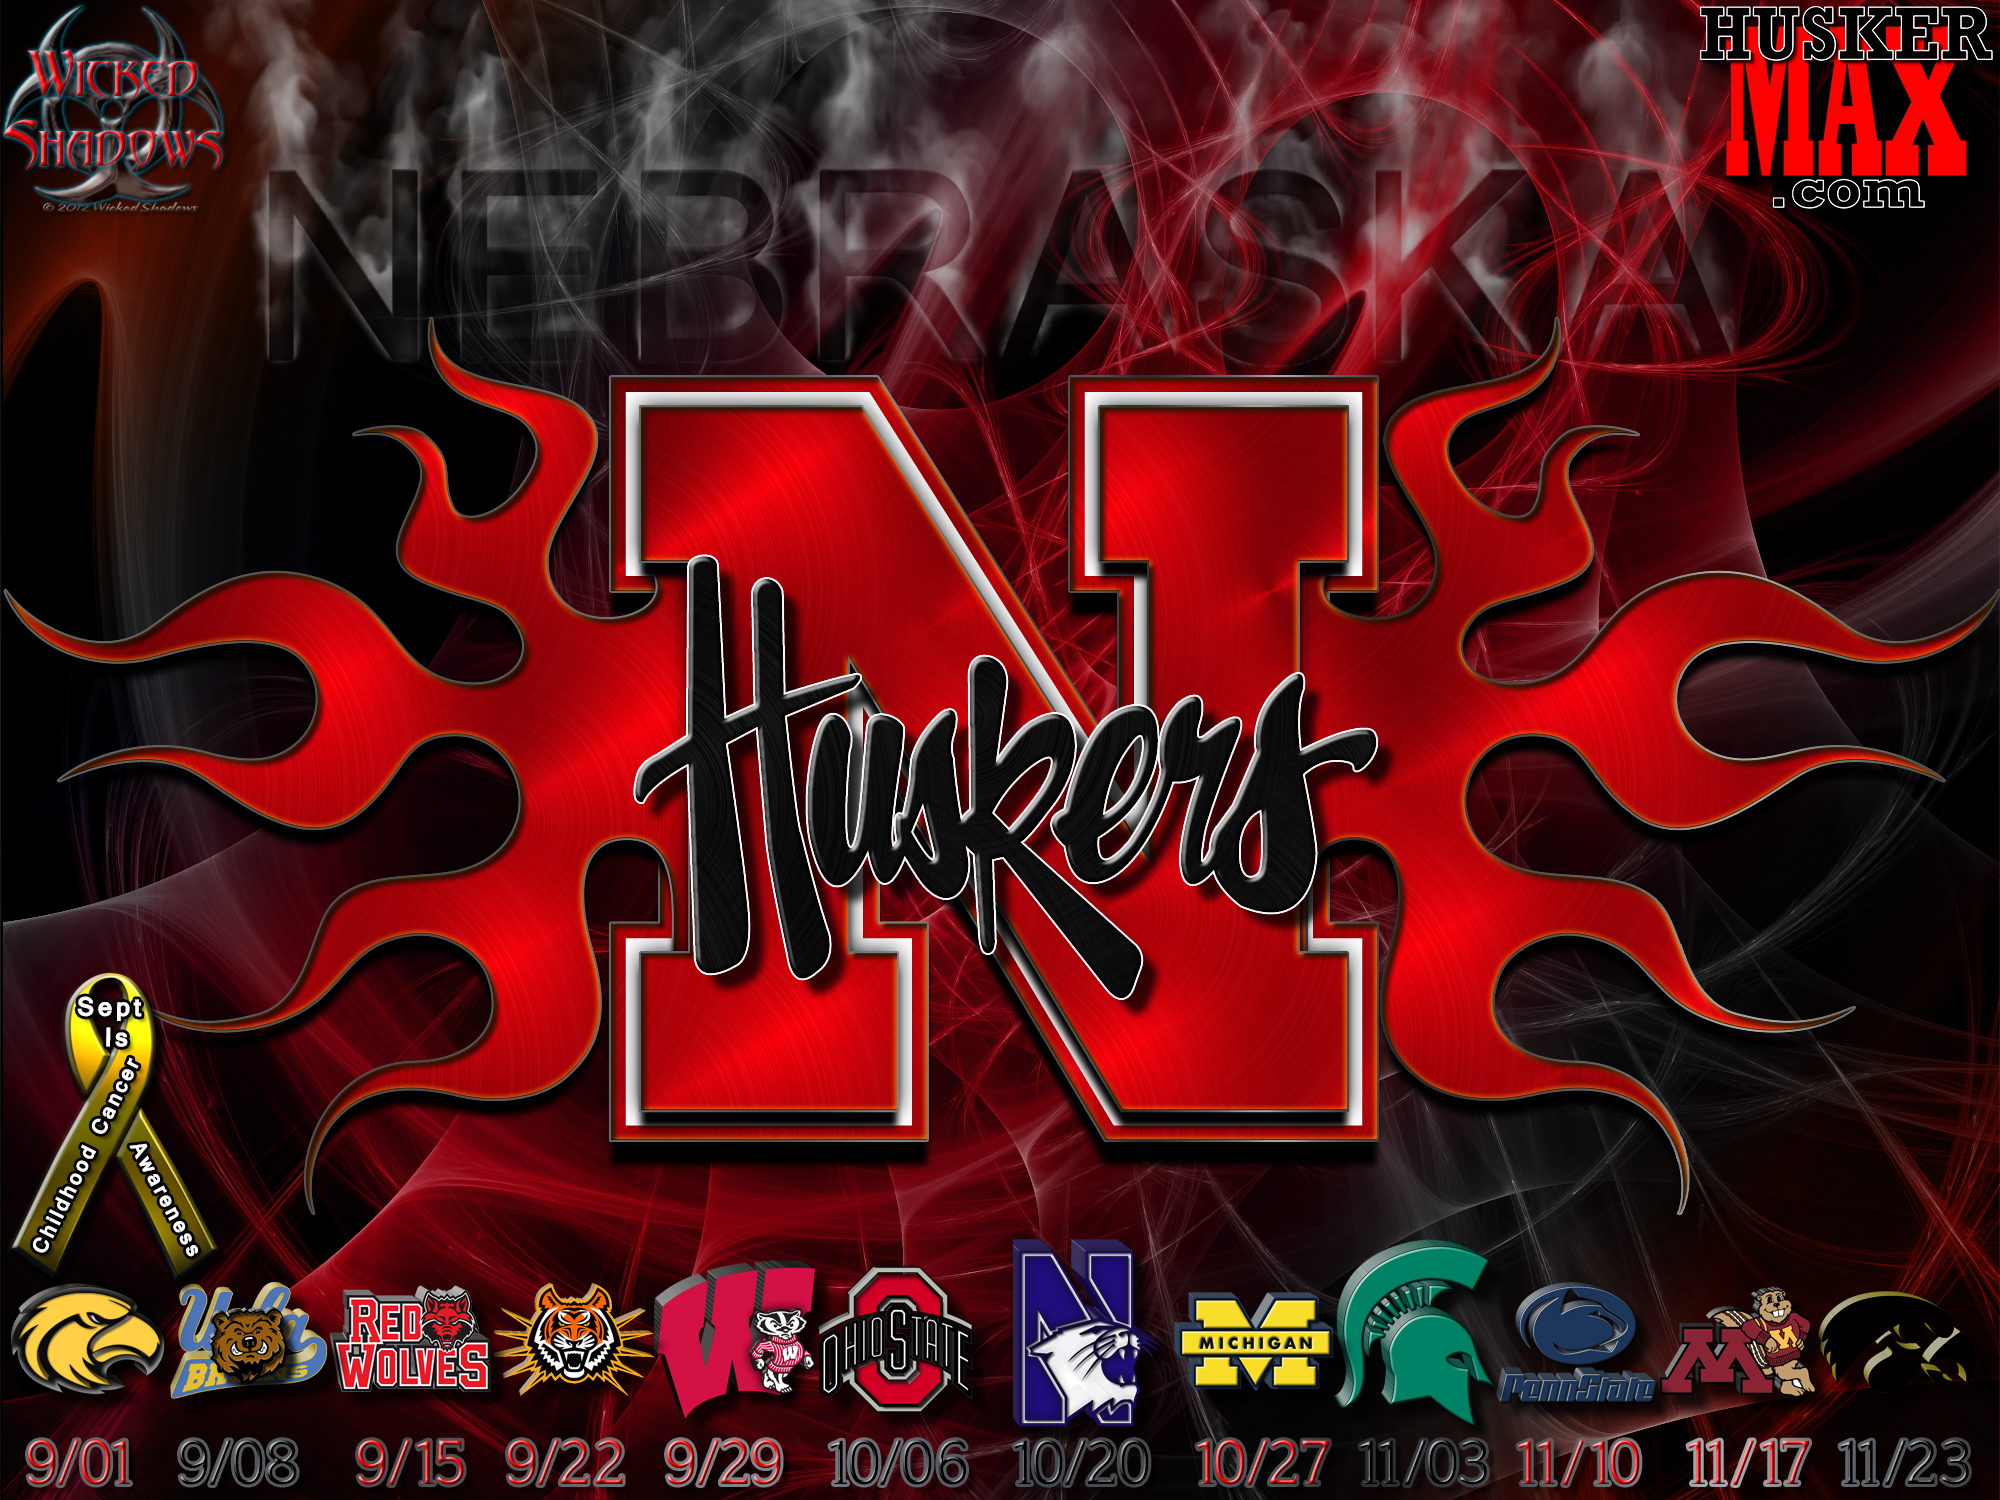 Nebraska Huskers 2012 football schedule wallpaper 2000x1500